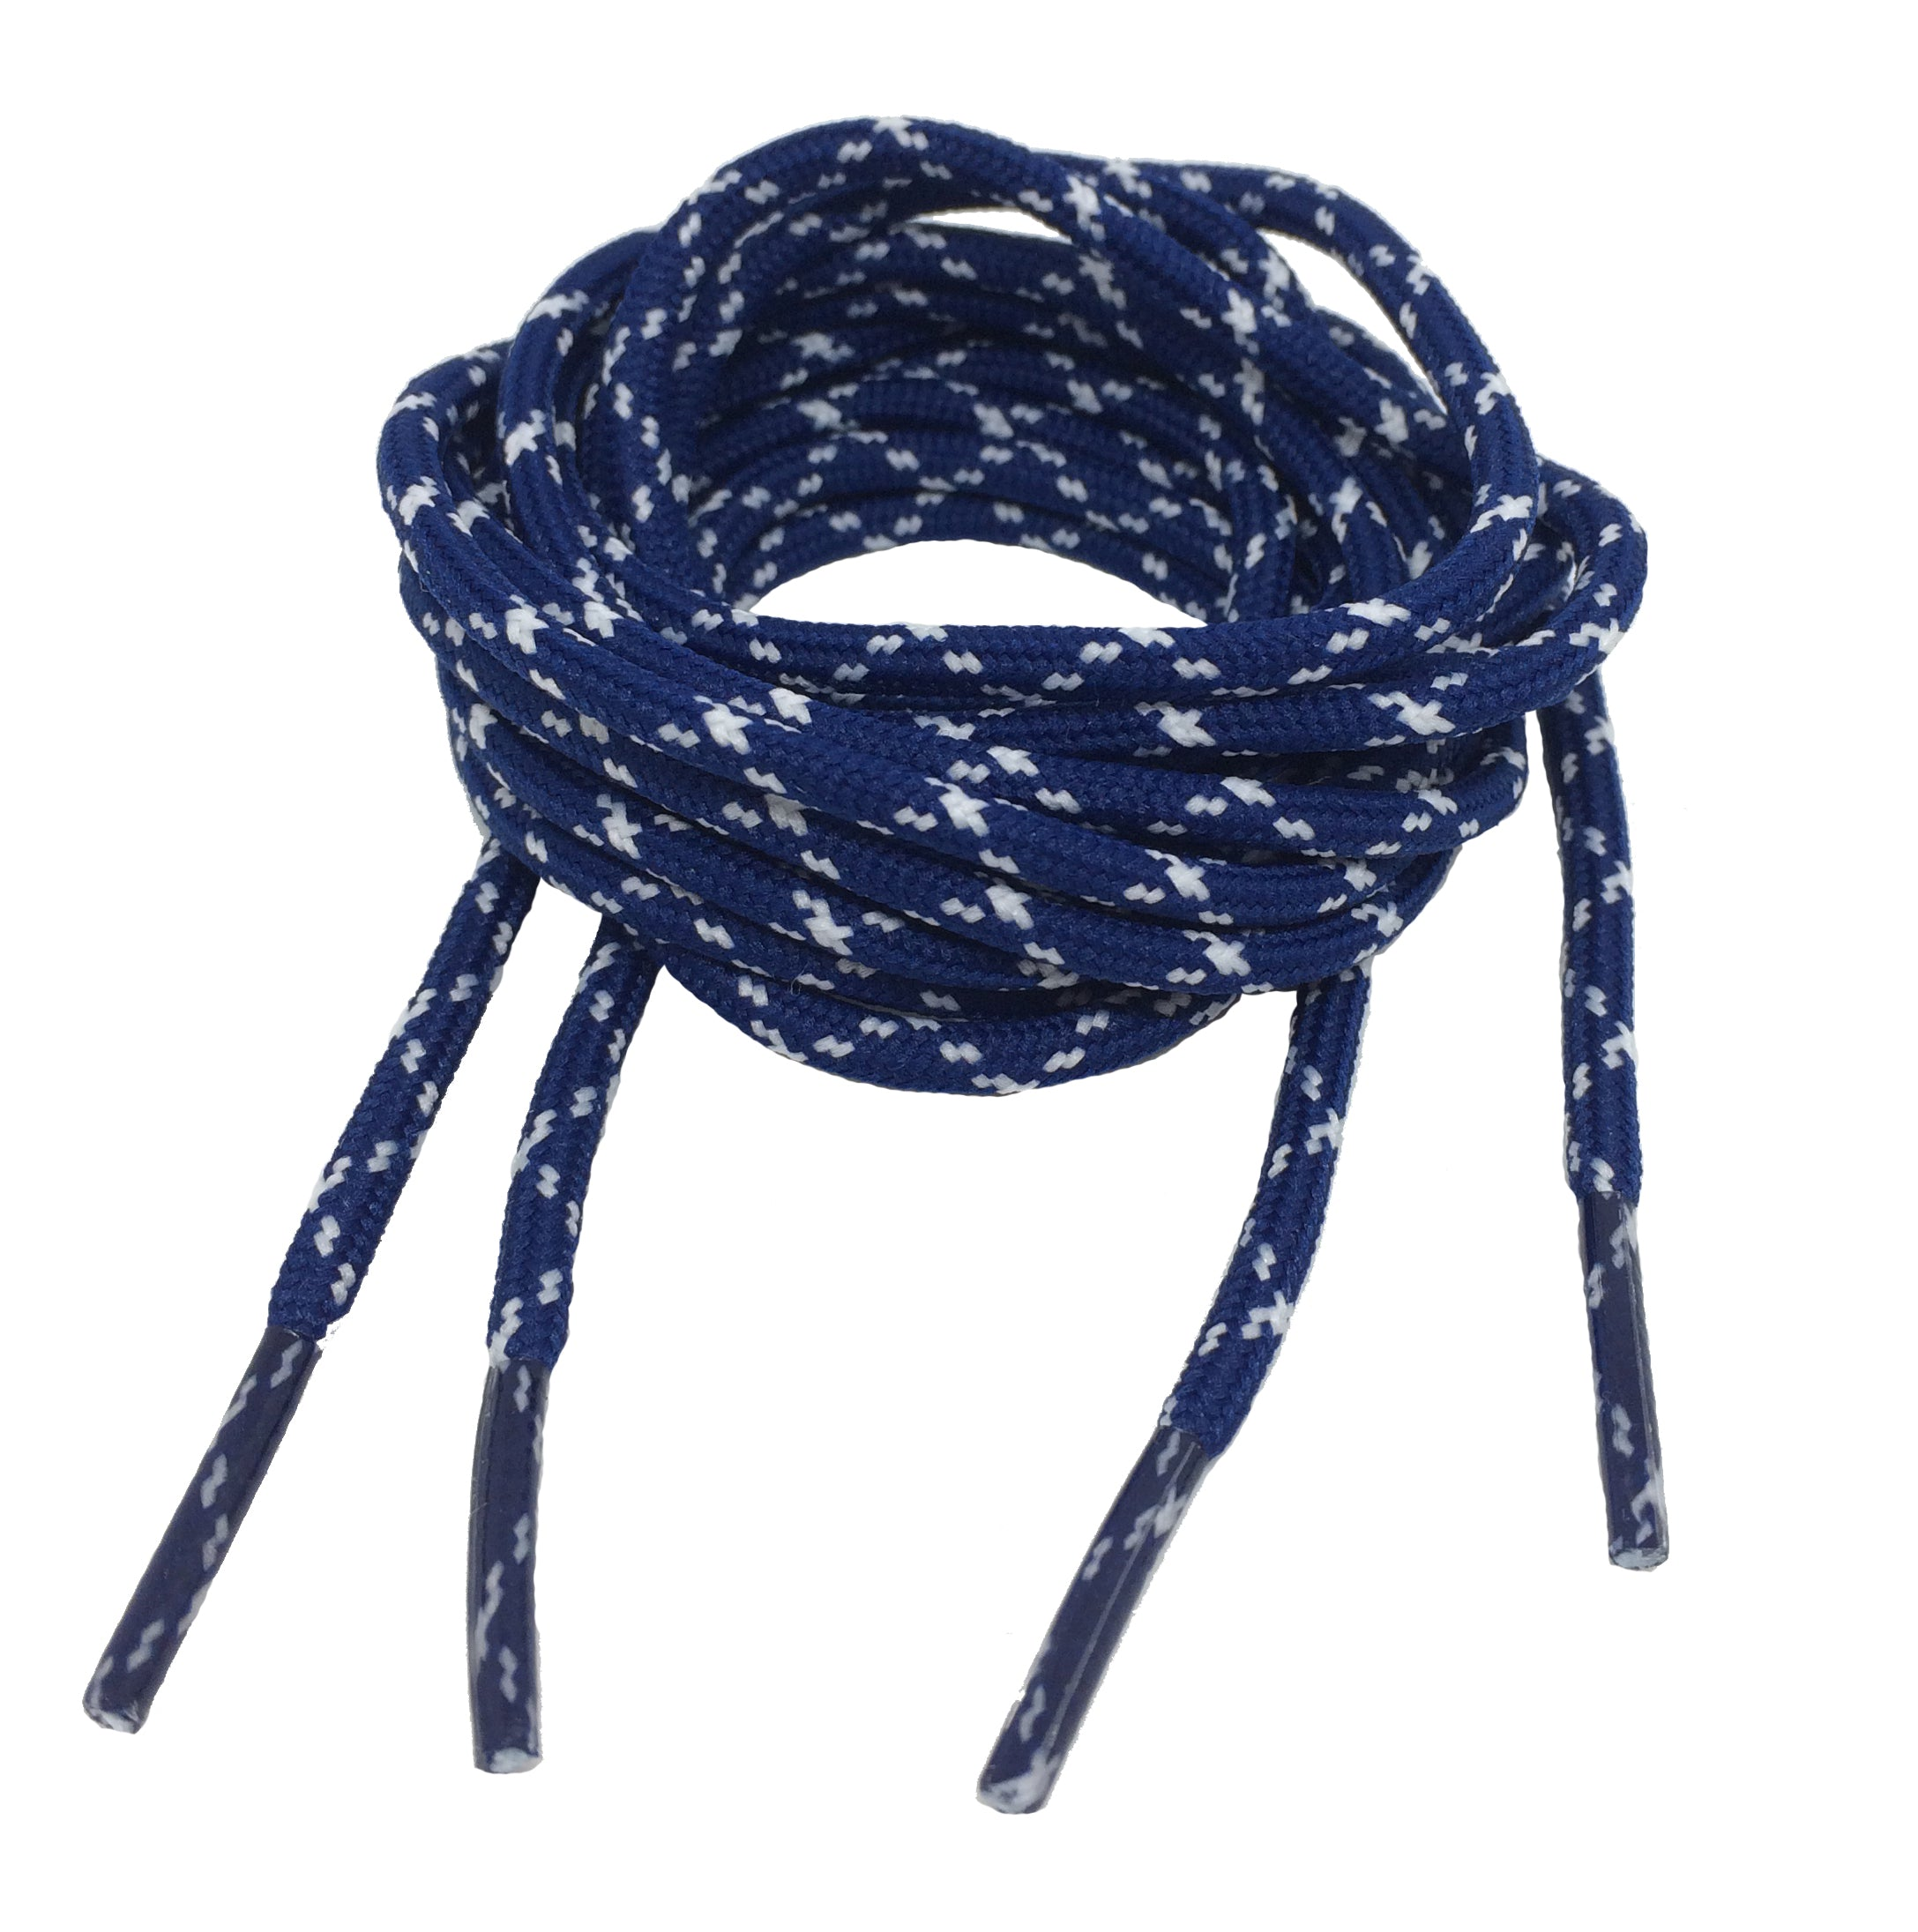 Round Navy Blue and White Bootlaces